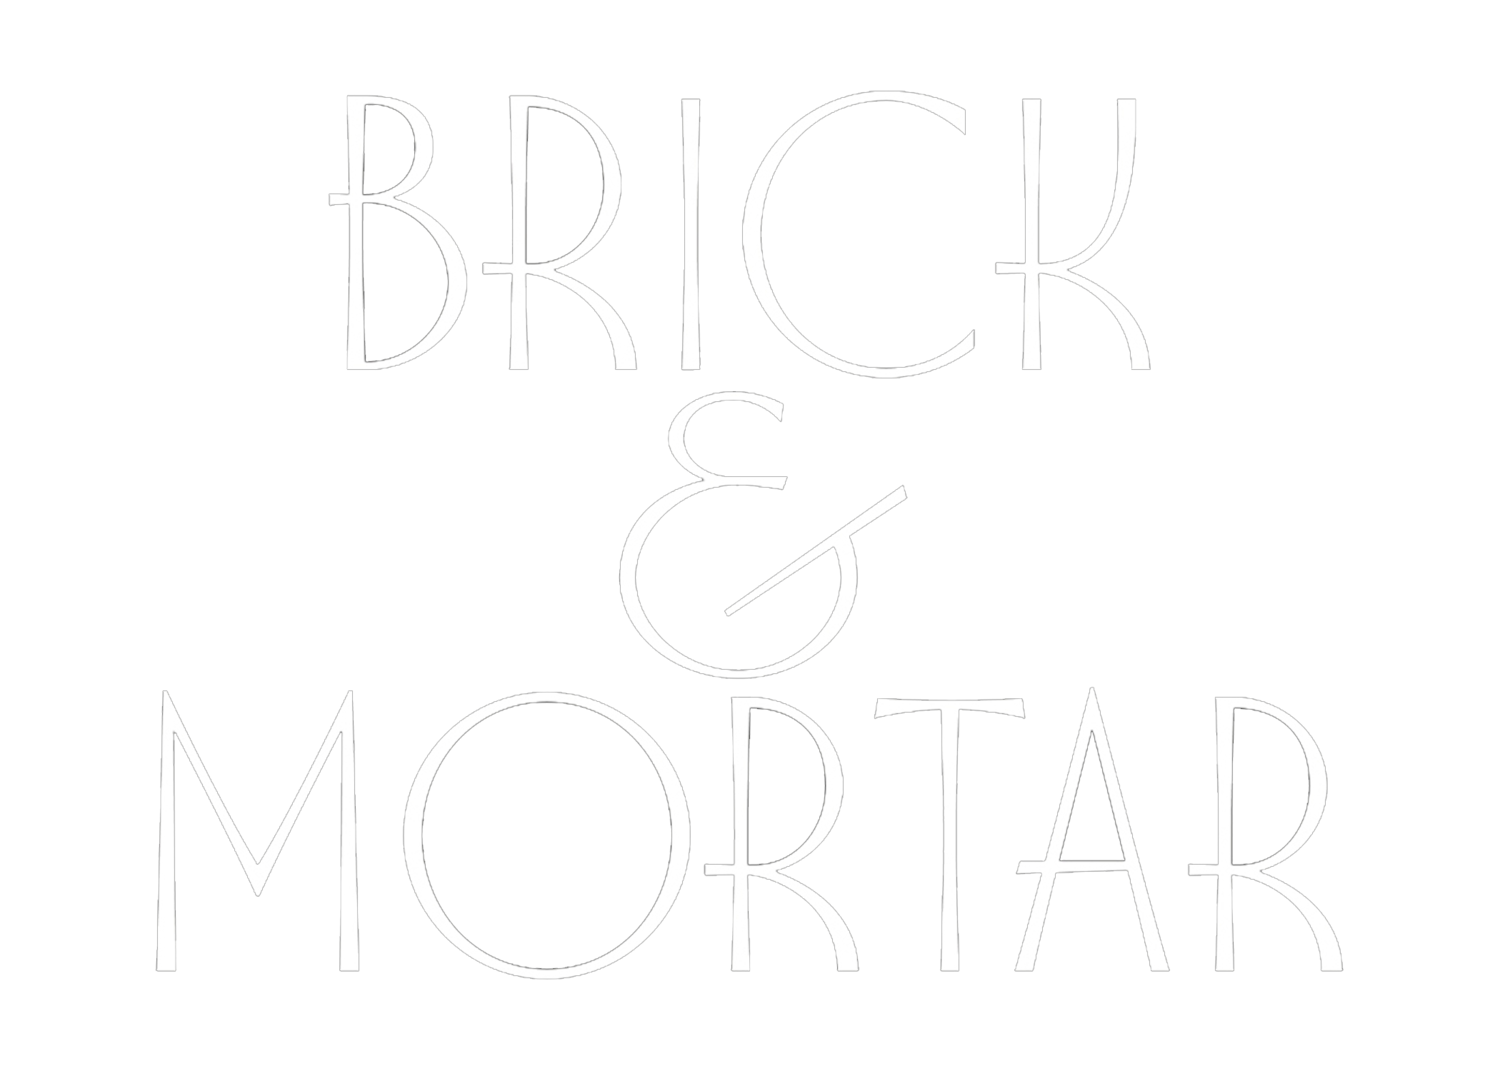 BrickMortar